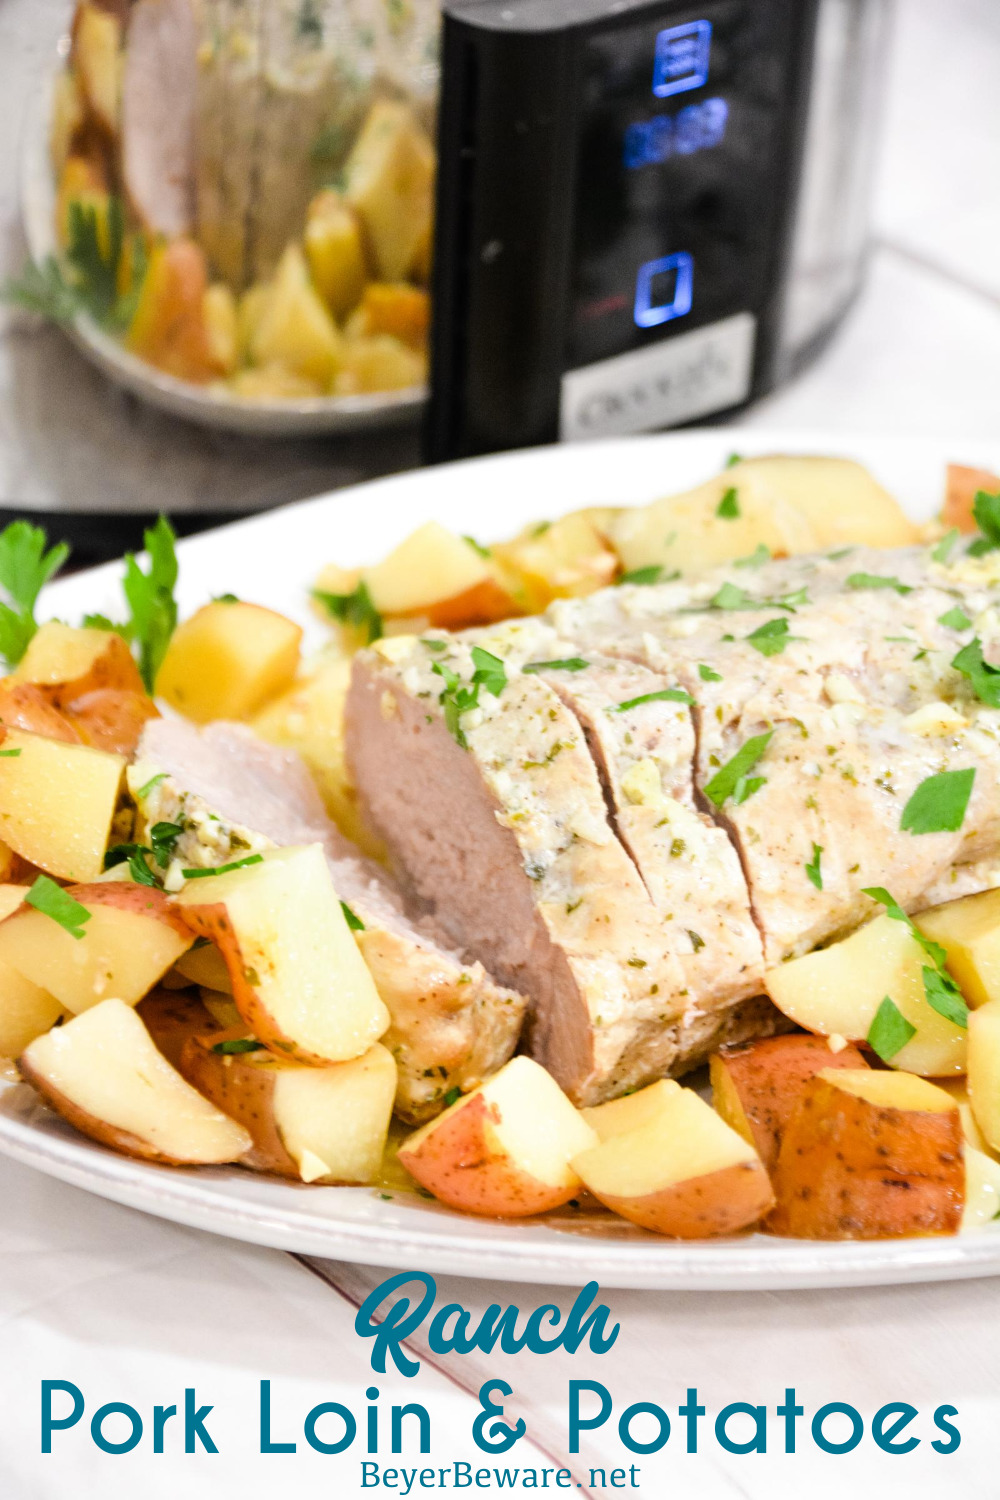 Crock pot pork loin roast and potatoes is an easy dump and go crock pot pot ranch pork loin recipe that will look and taste fancy when you serve it for dinner.